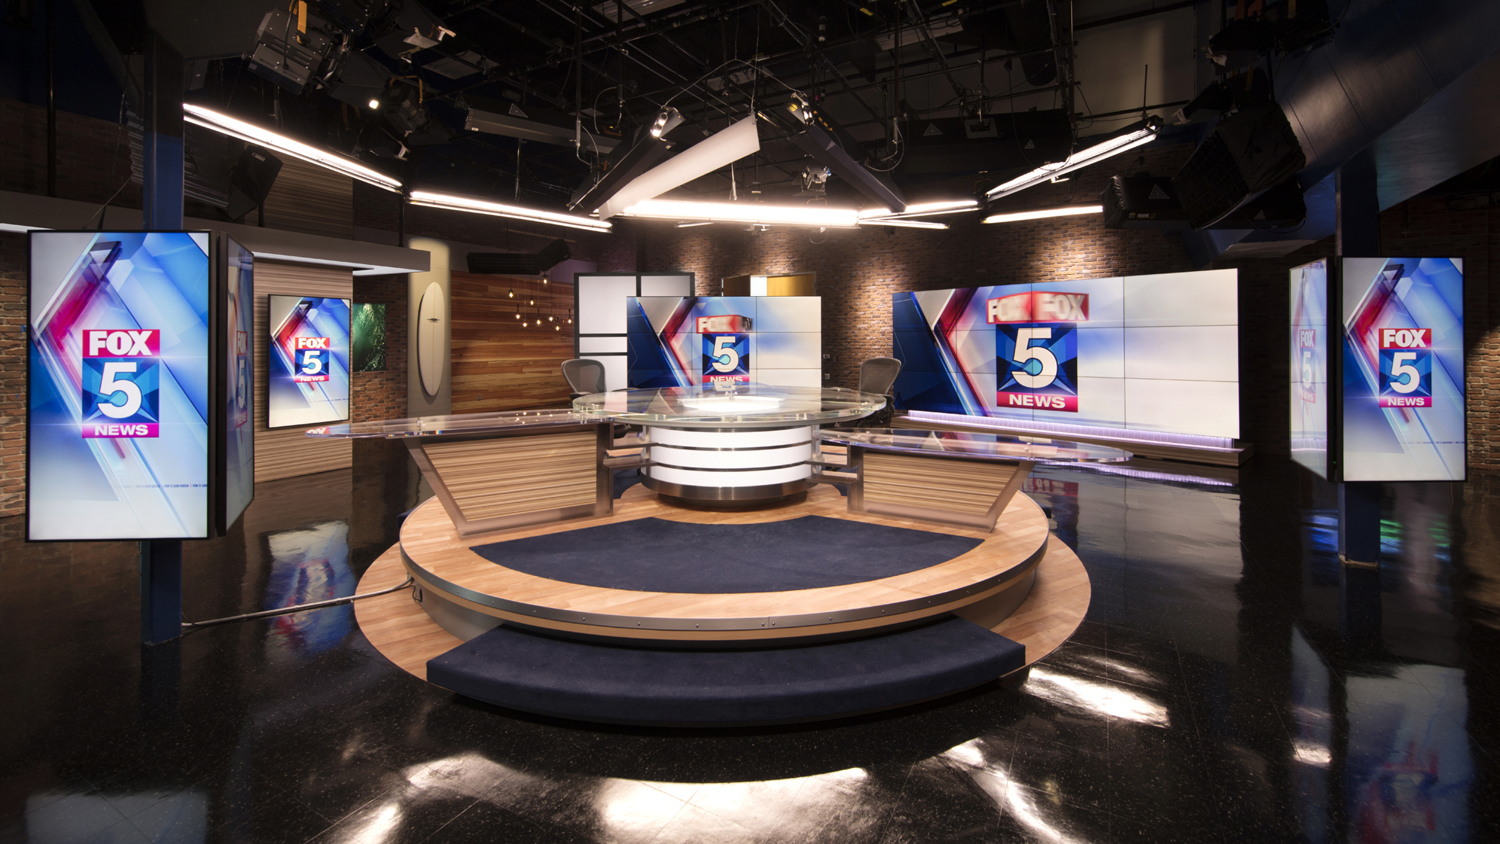 NCS_KSWB-Fox-5-San-Diego-TV-Studio_0001